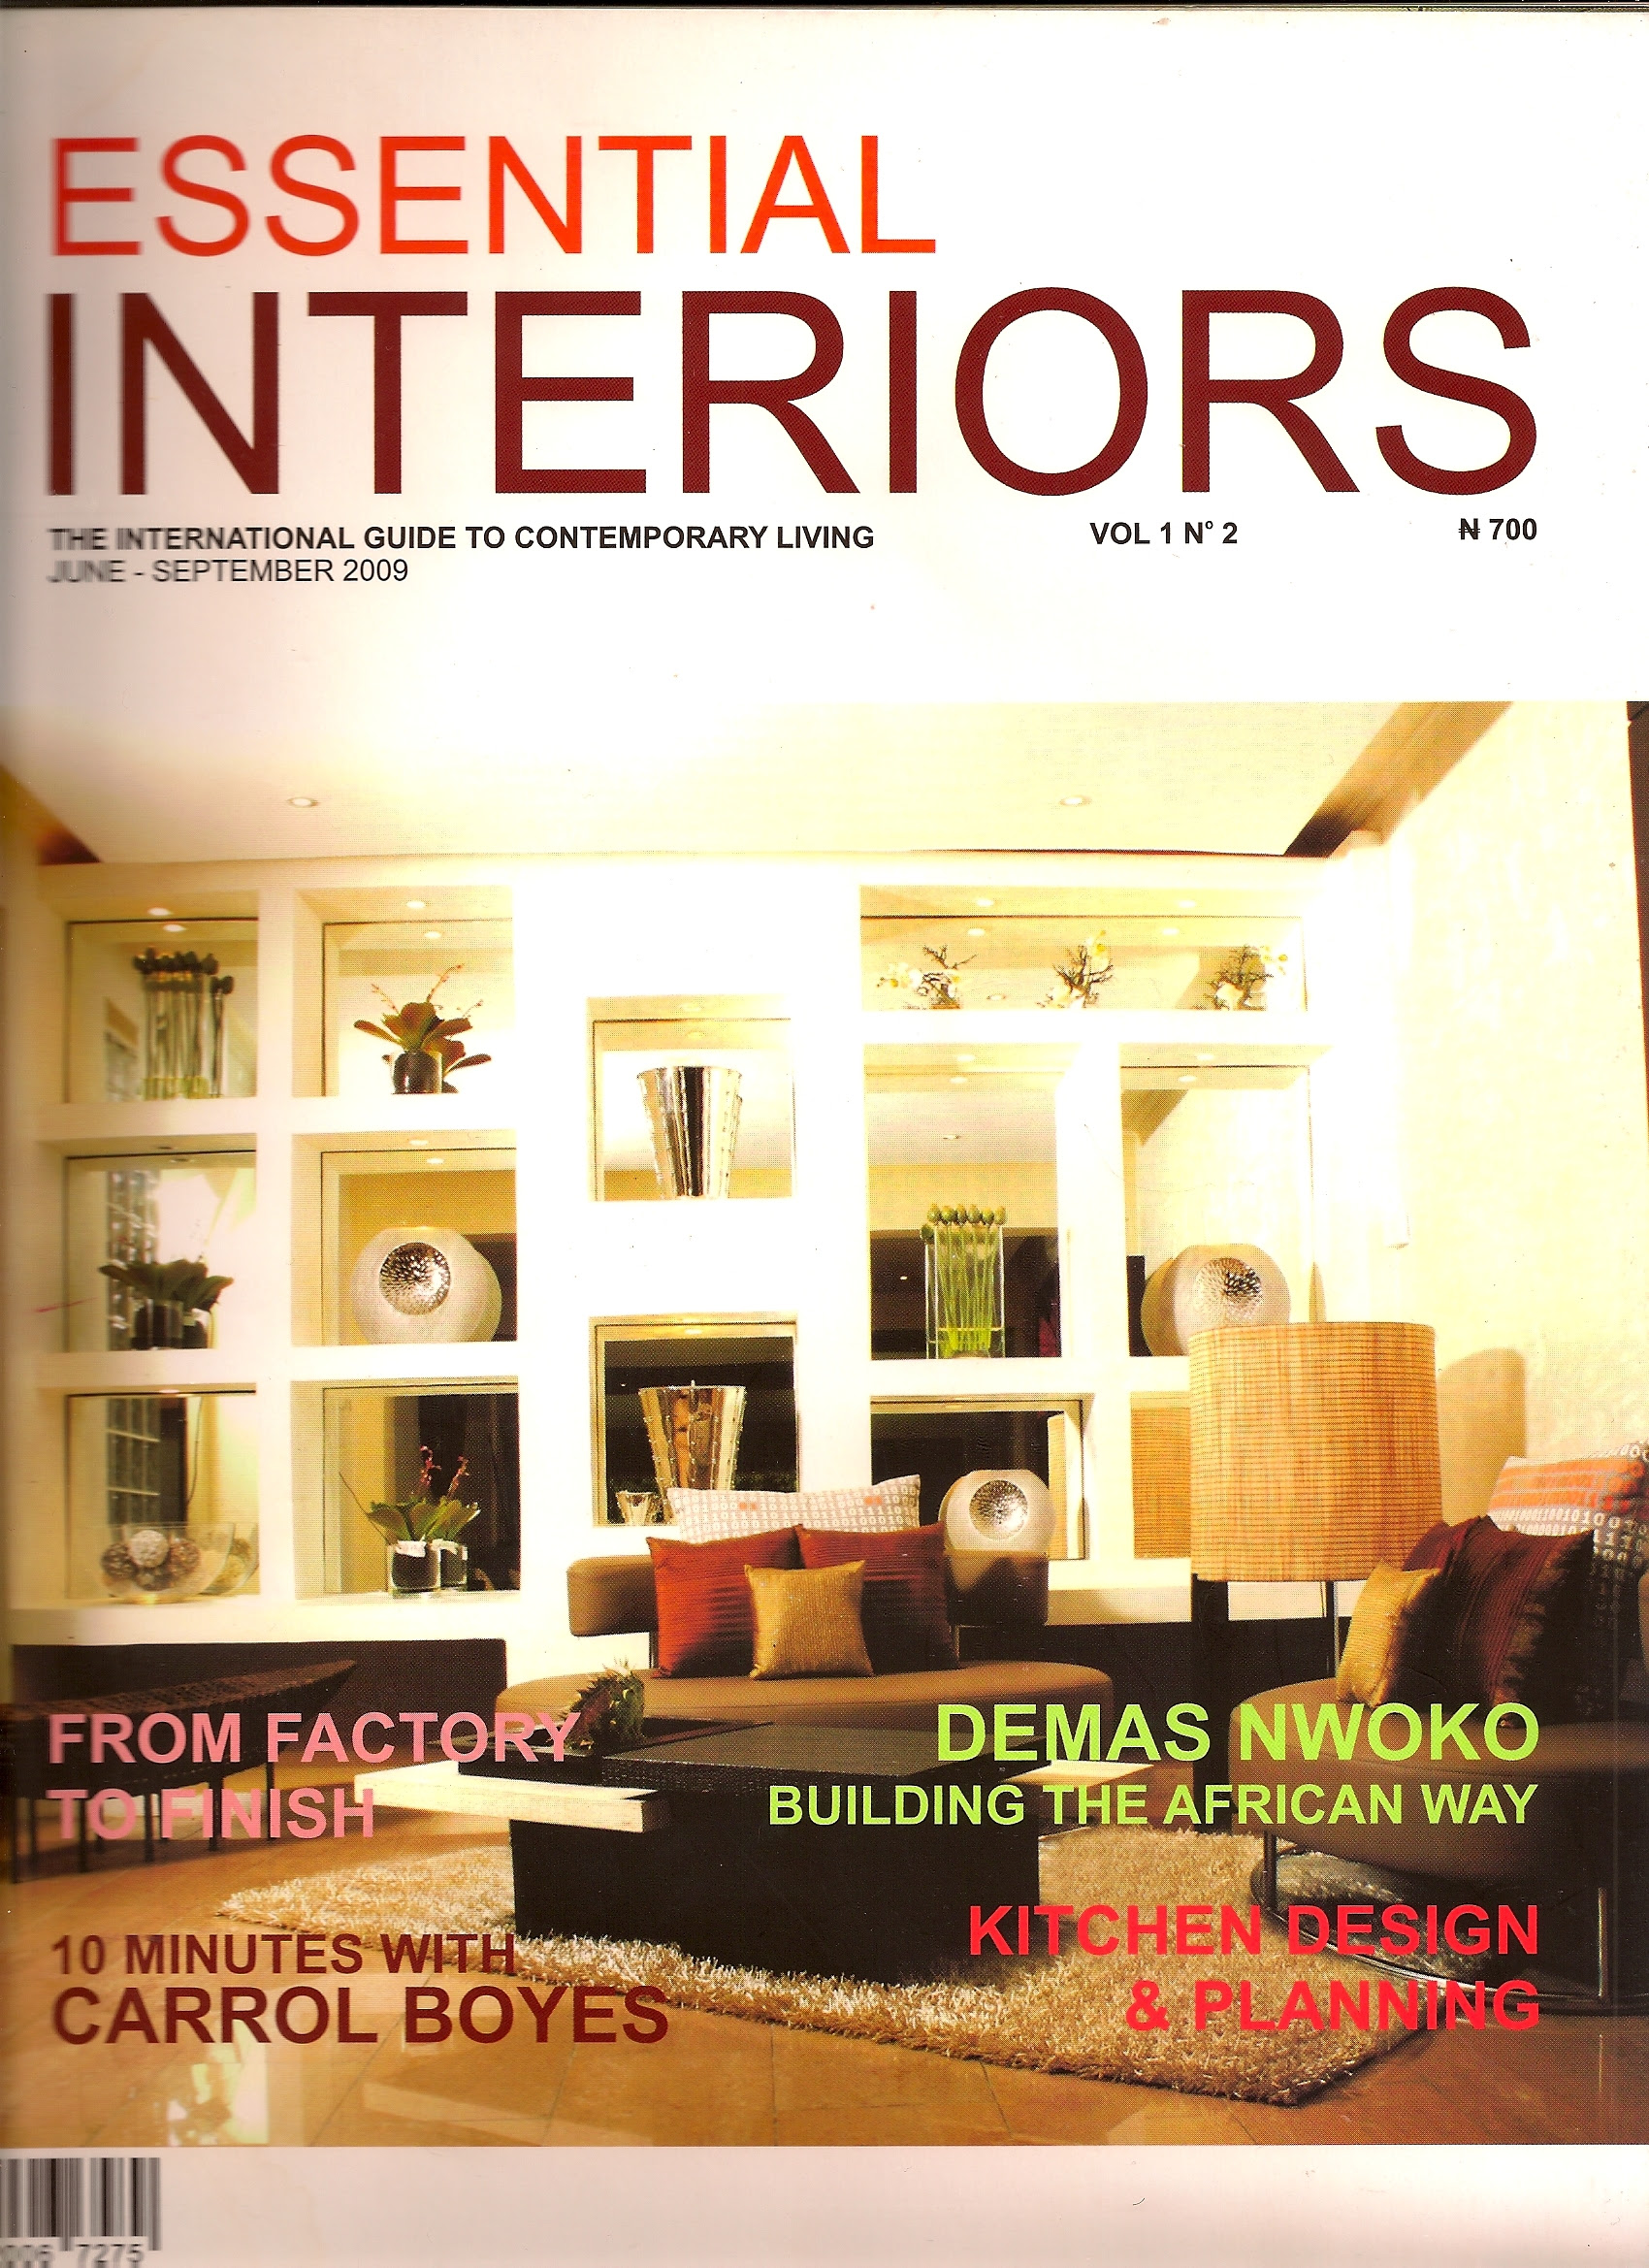 Essential Interiors Design Magazine | Aratuntun